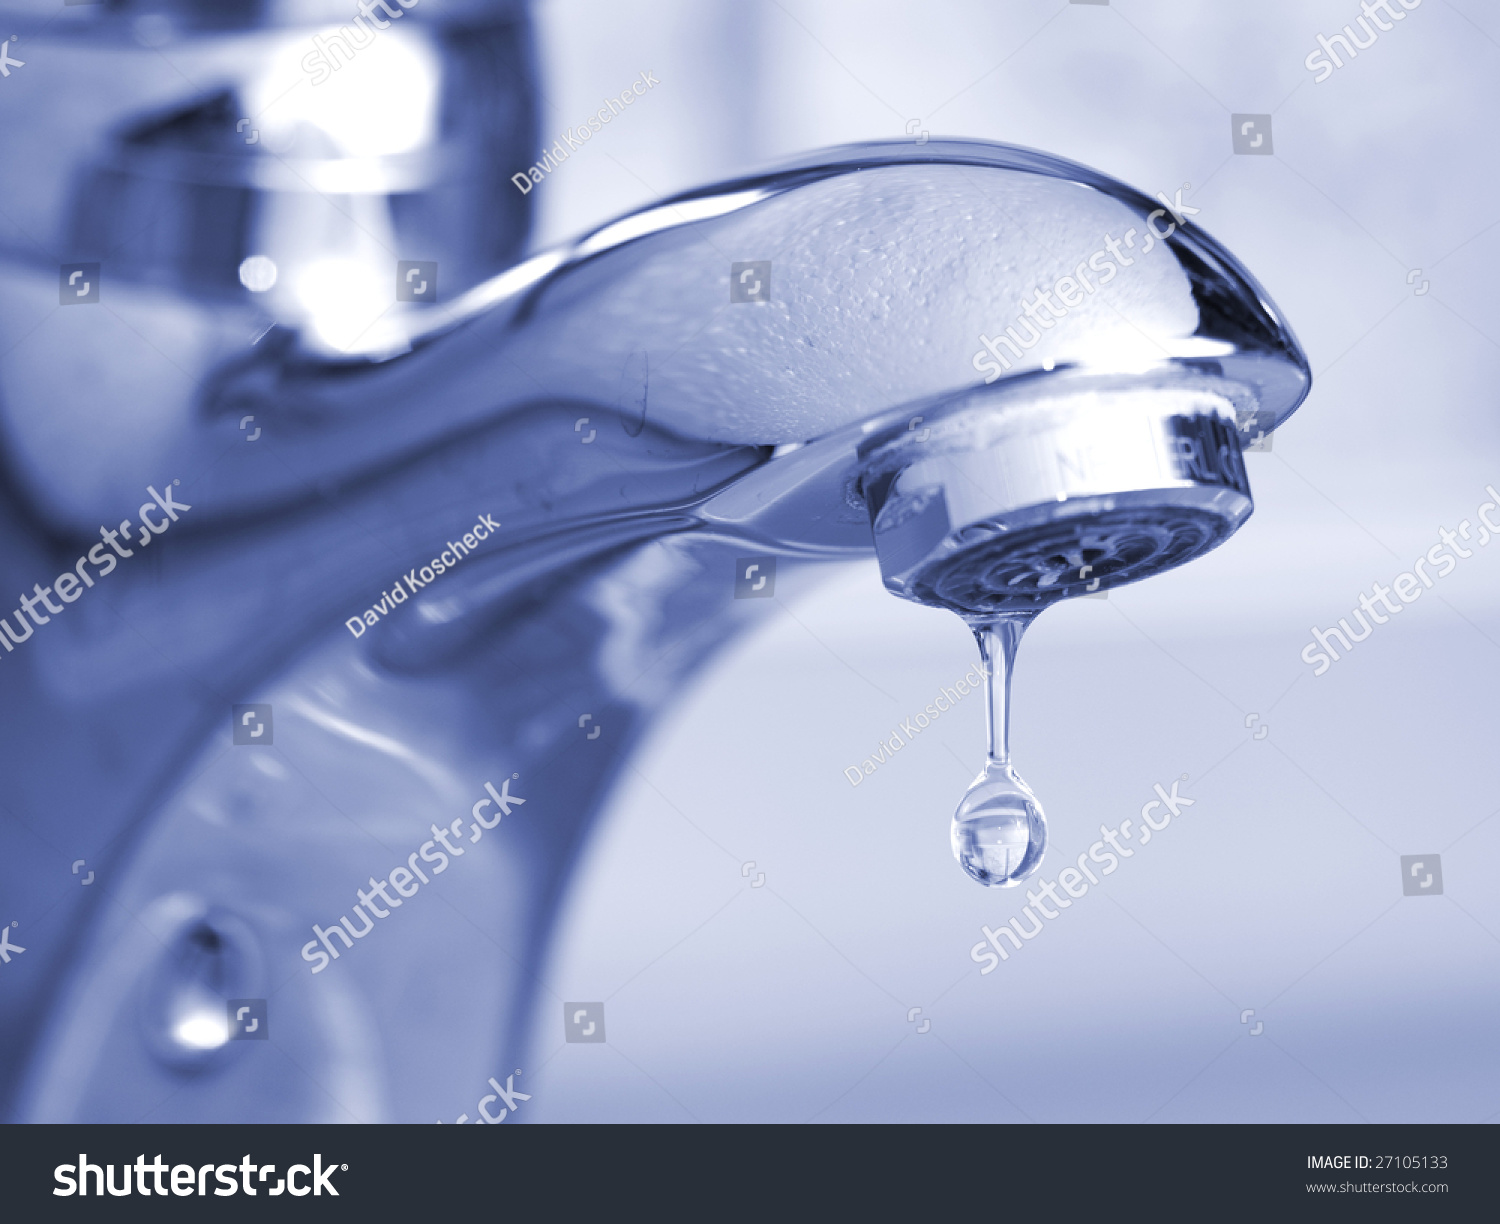 Leaking Faucet Stock Photo (100% Legal Protection) 27105133 ...